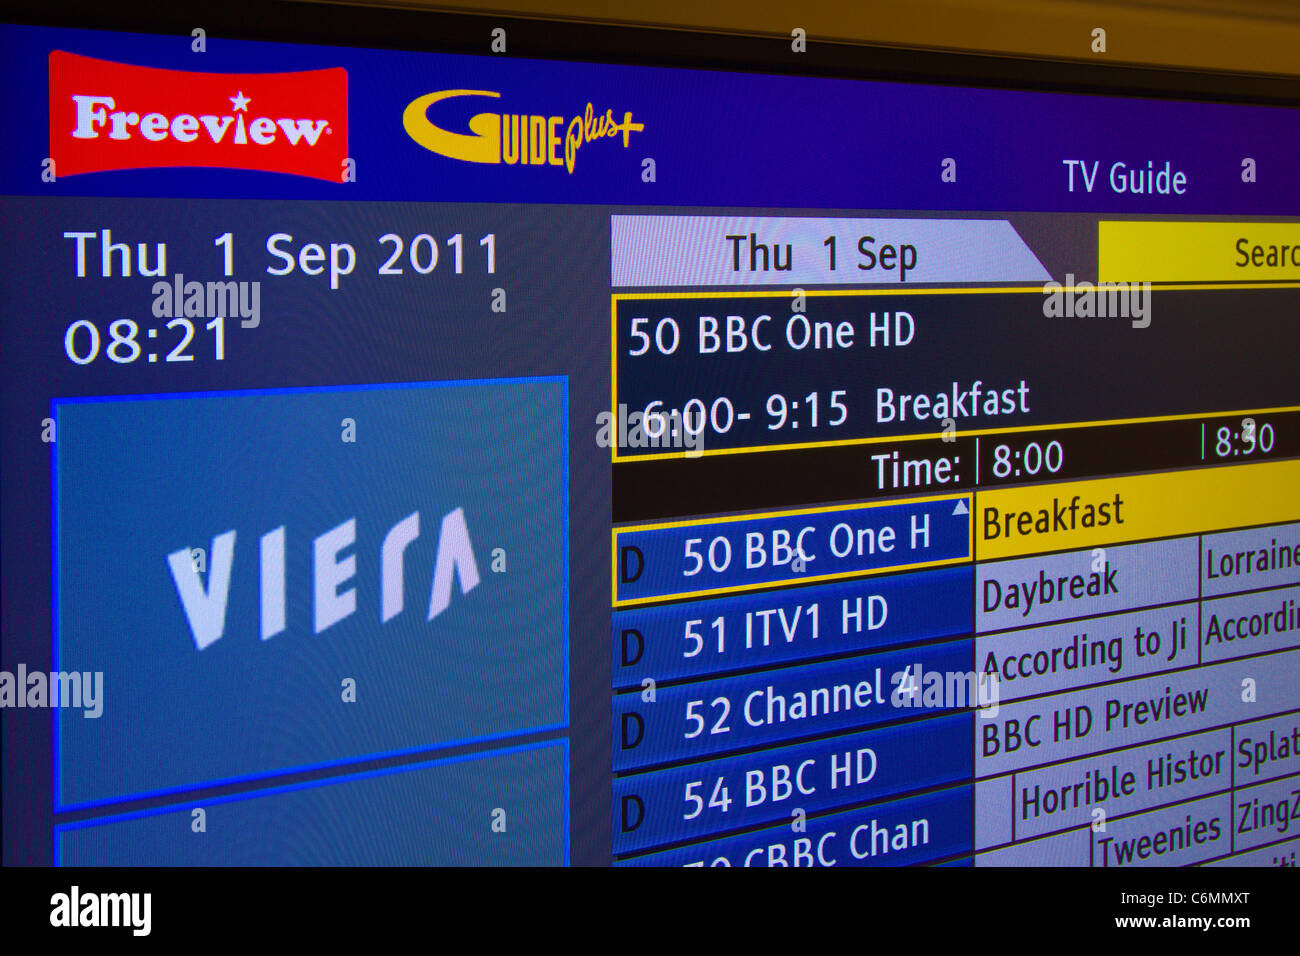 T. V guide freeview.